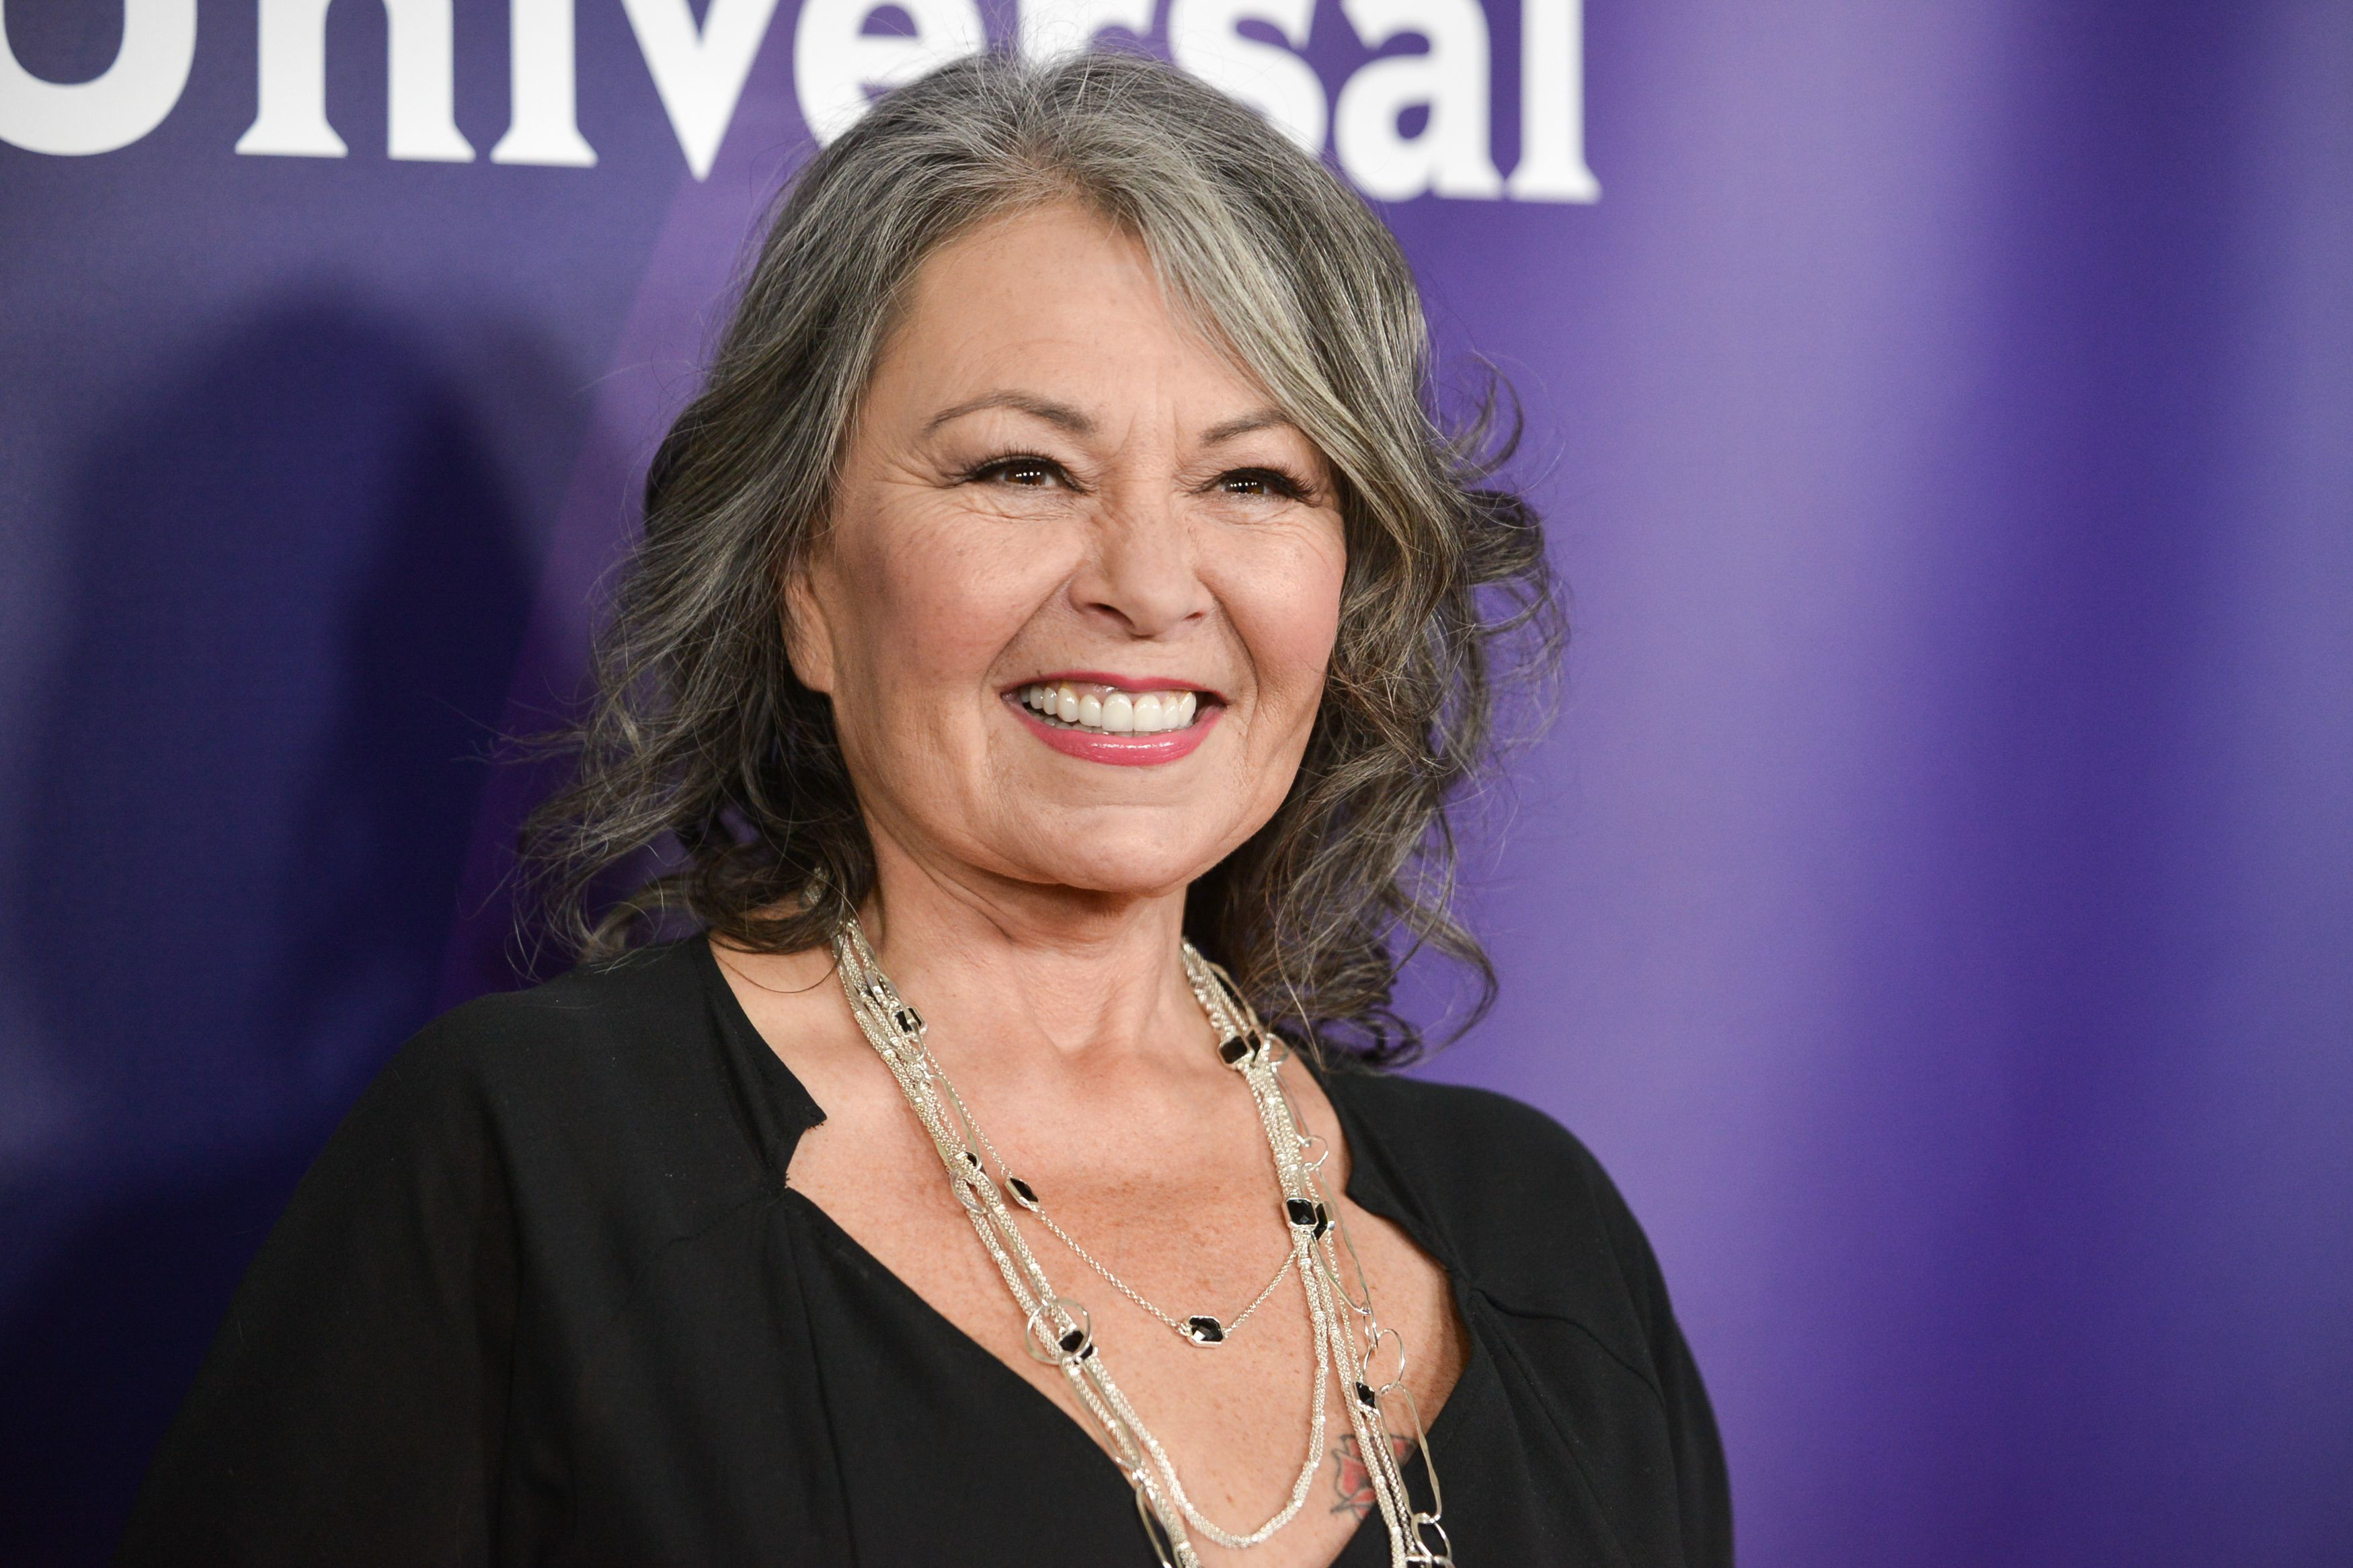 ABC cancels 'Roseanne' following Roseanne Barr's racist tweet targeting Obama adviser